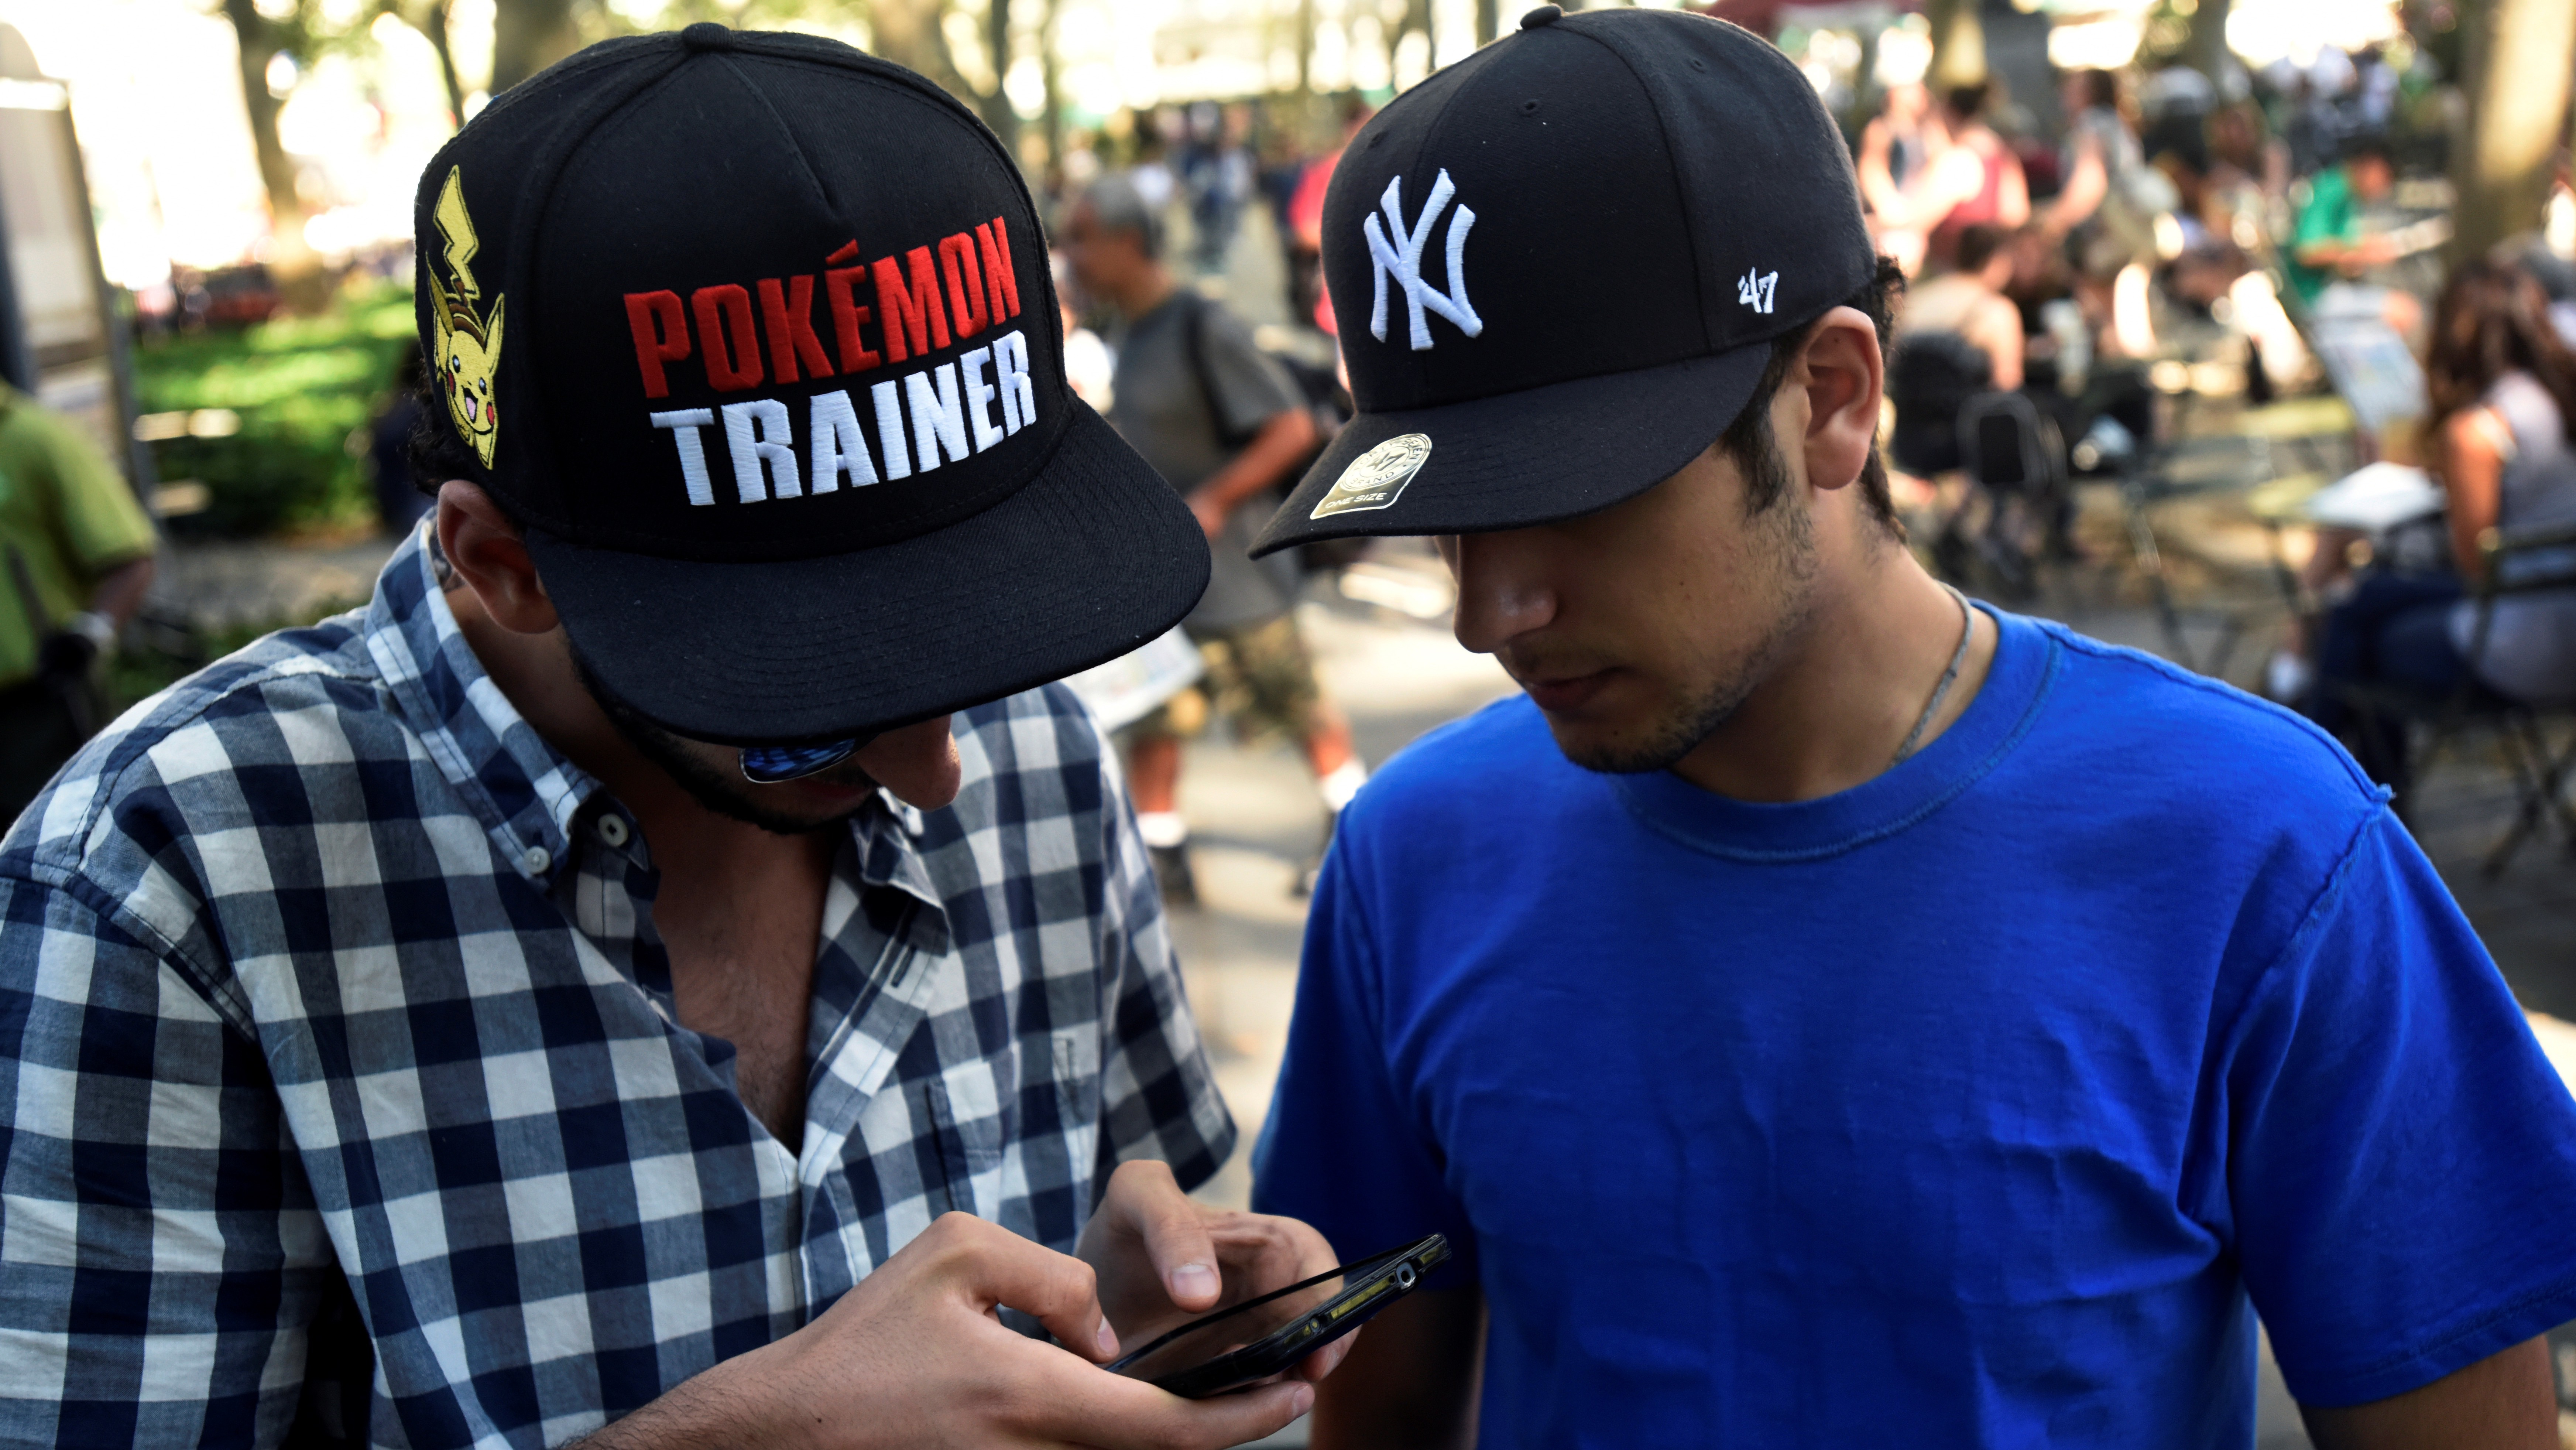 """A man wears a Pokemon-themed hat as he plays the augmented reality mobile game """"Pokemon Go"""" by Nintendo in Bryant Park, New York City, U.S. July 11, 2016. REUTERS/Mark Kauzlarich - RTSHH1S"""